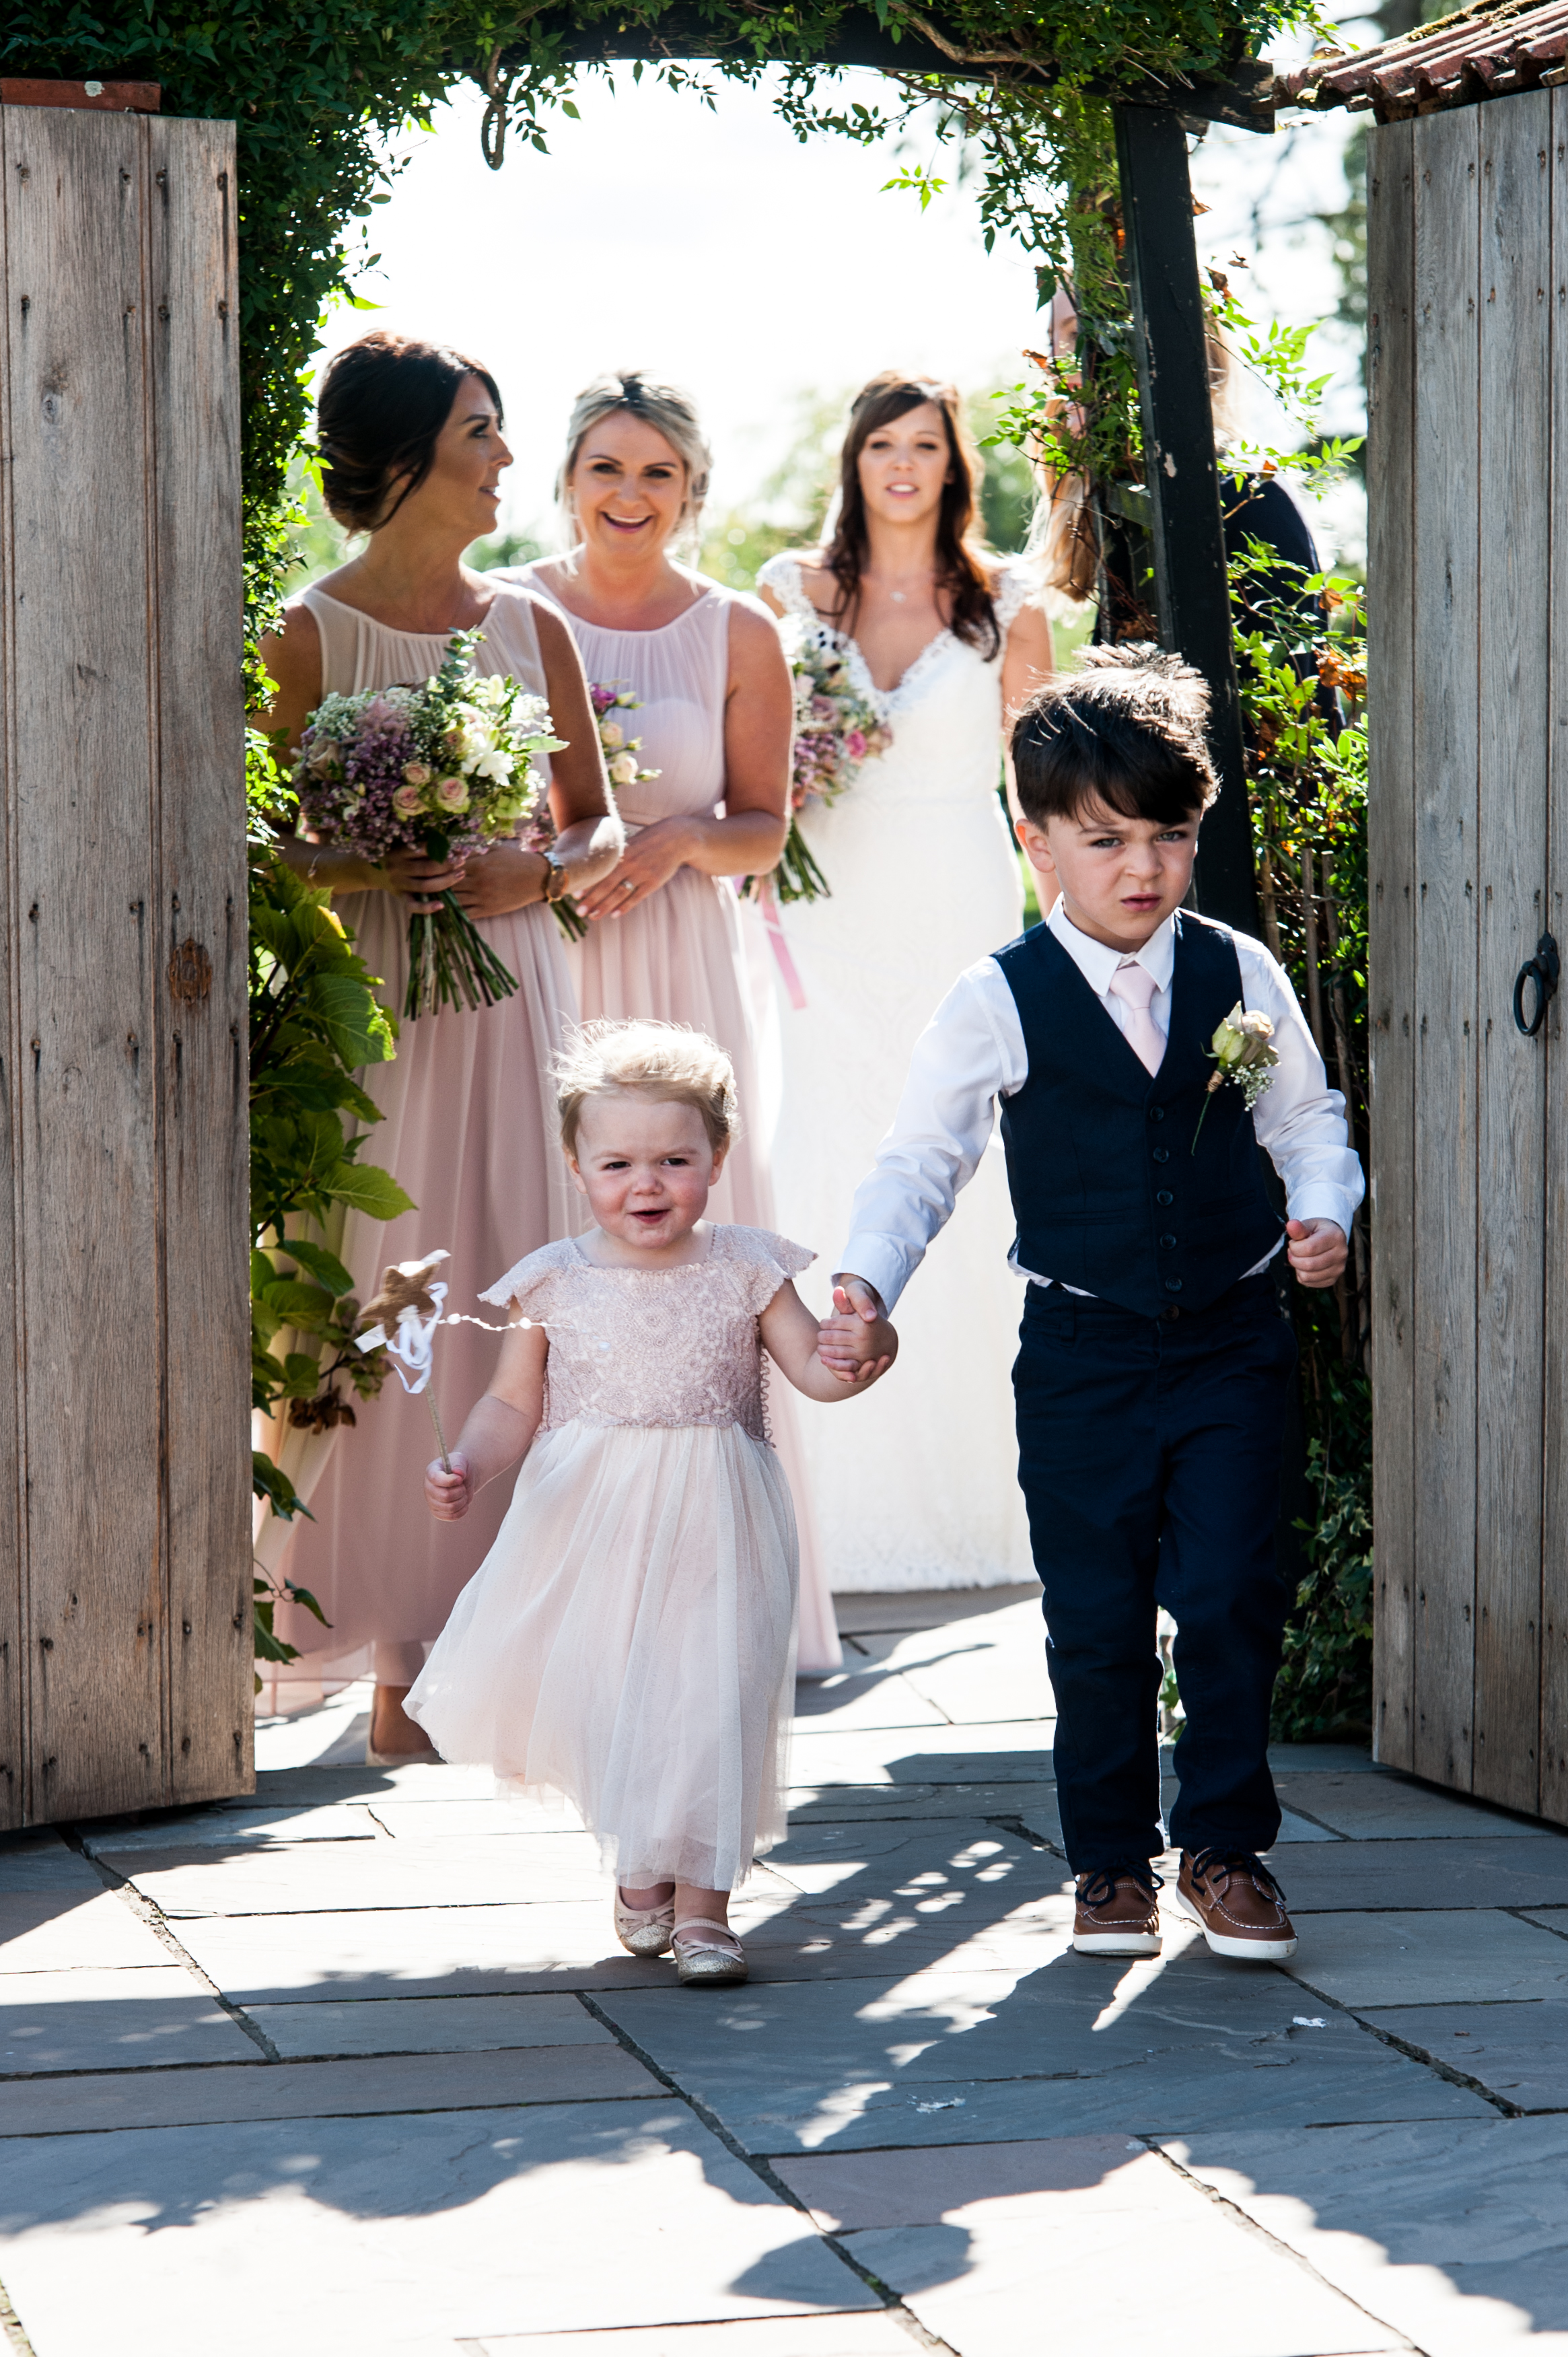 Flower girl and page boy make their entrance through the walled garden gate